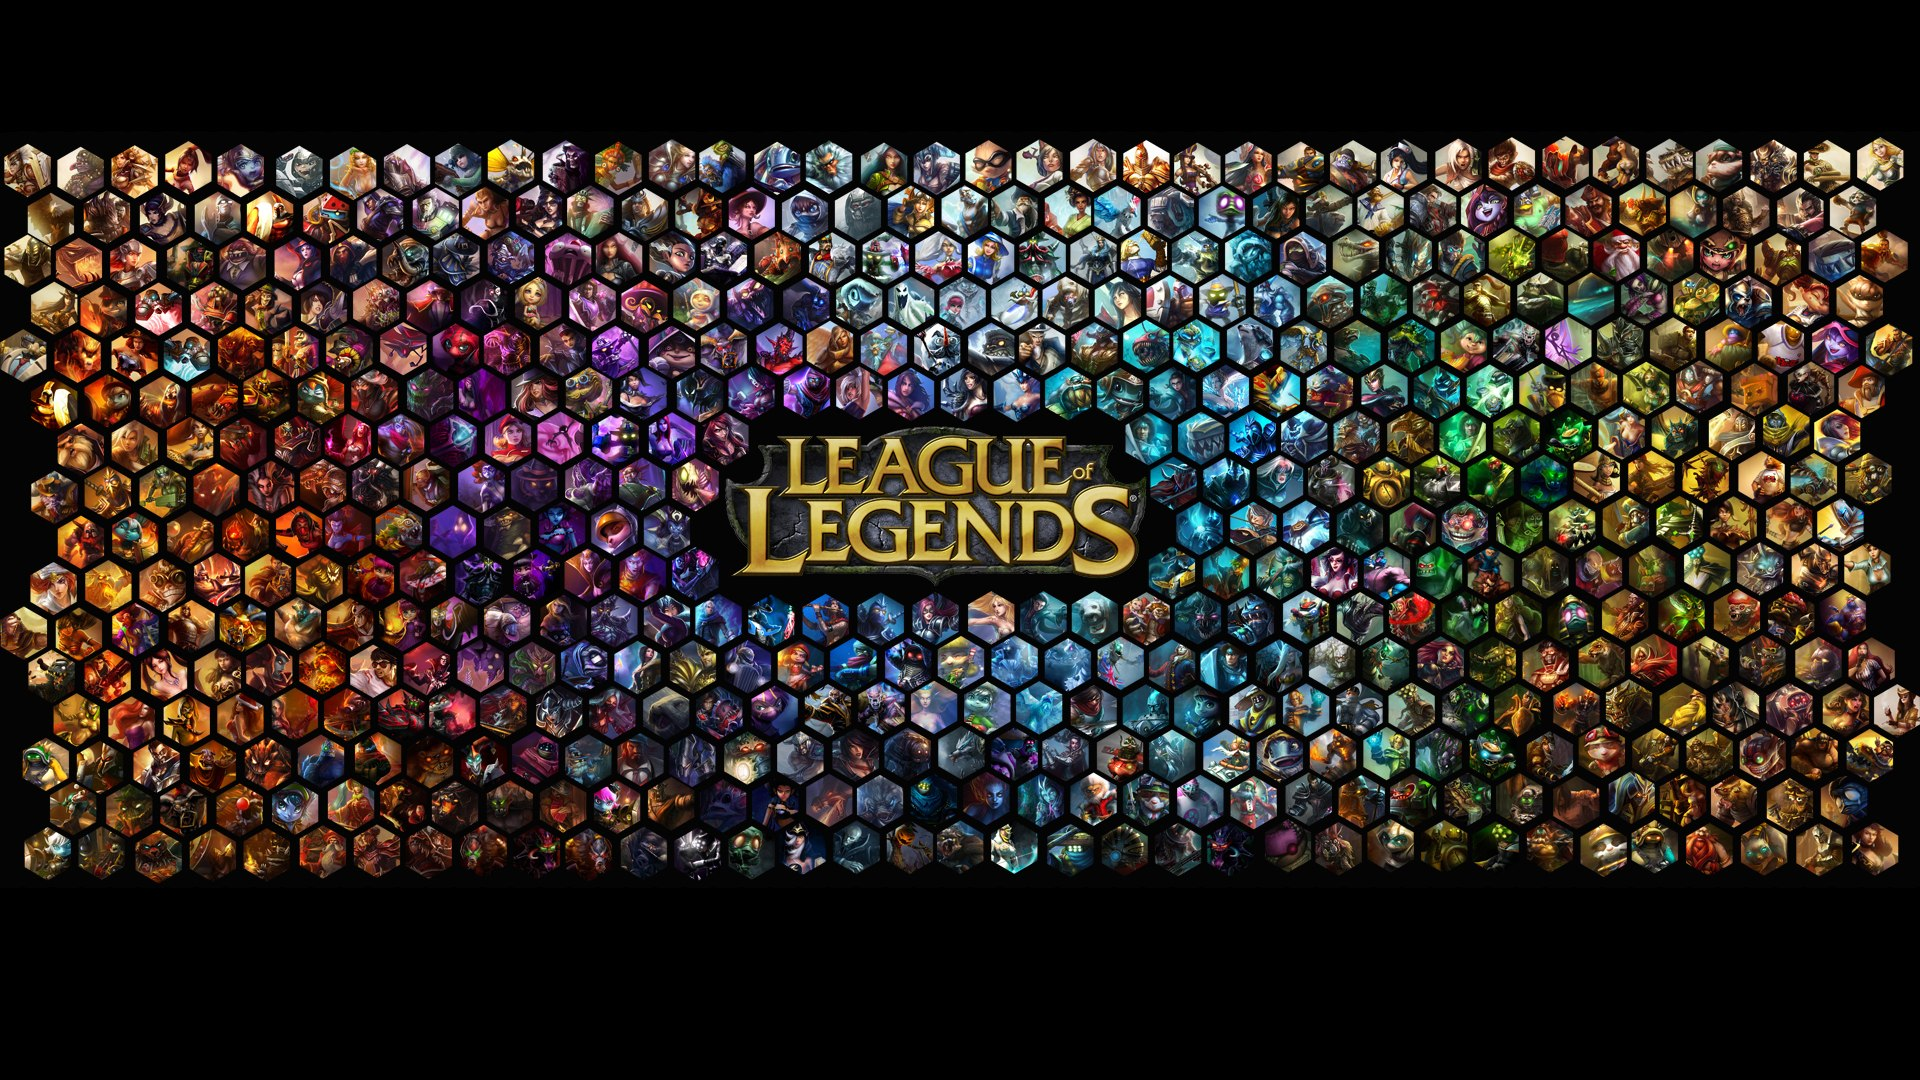 League of Legends Wallpaper 1920x1080